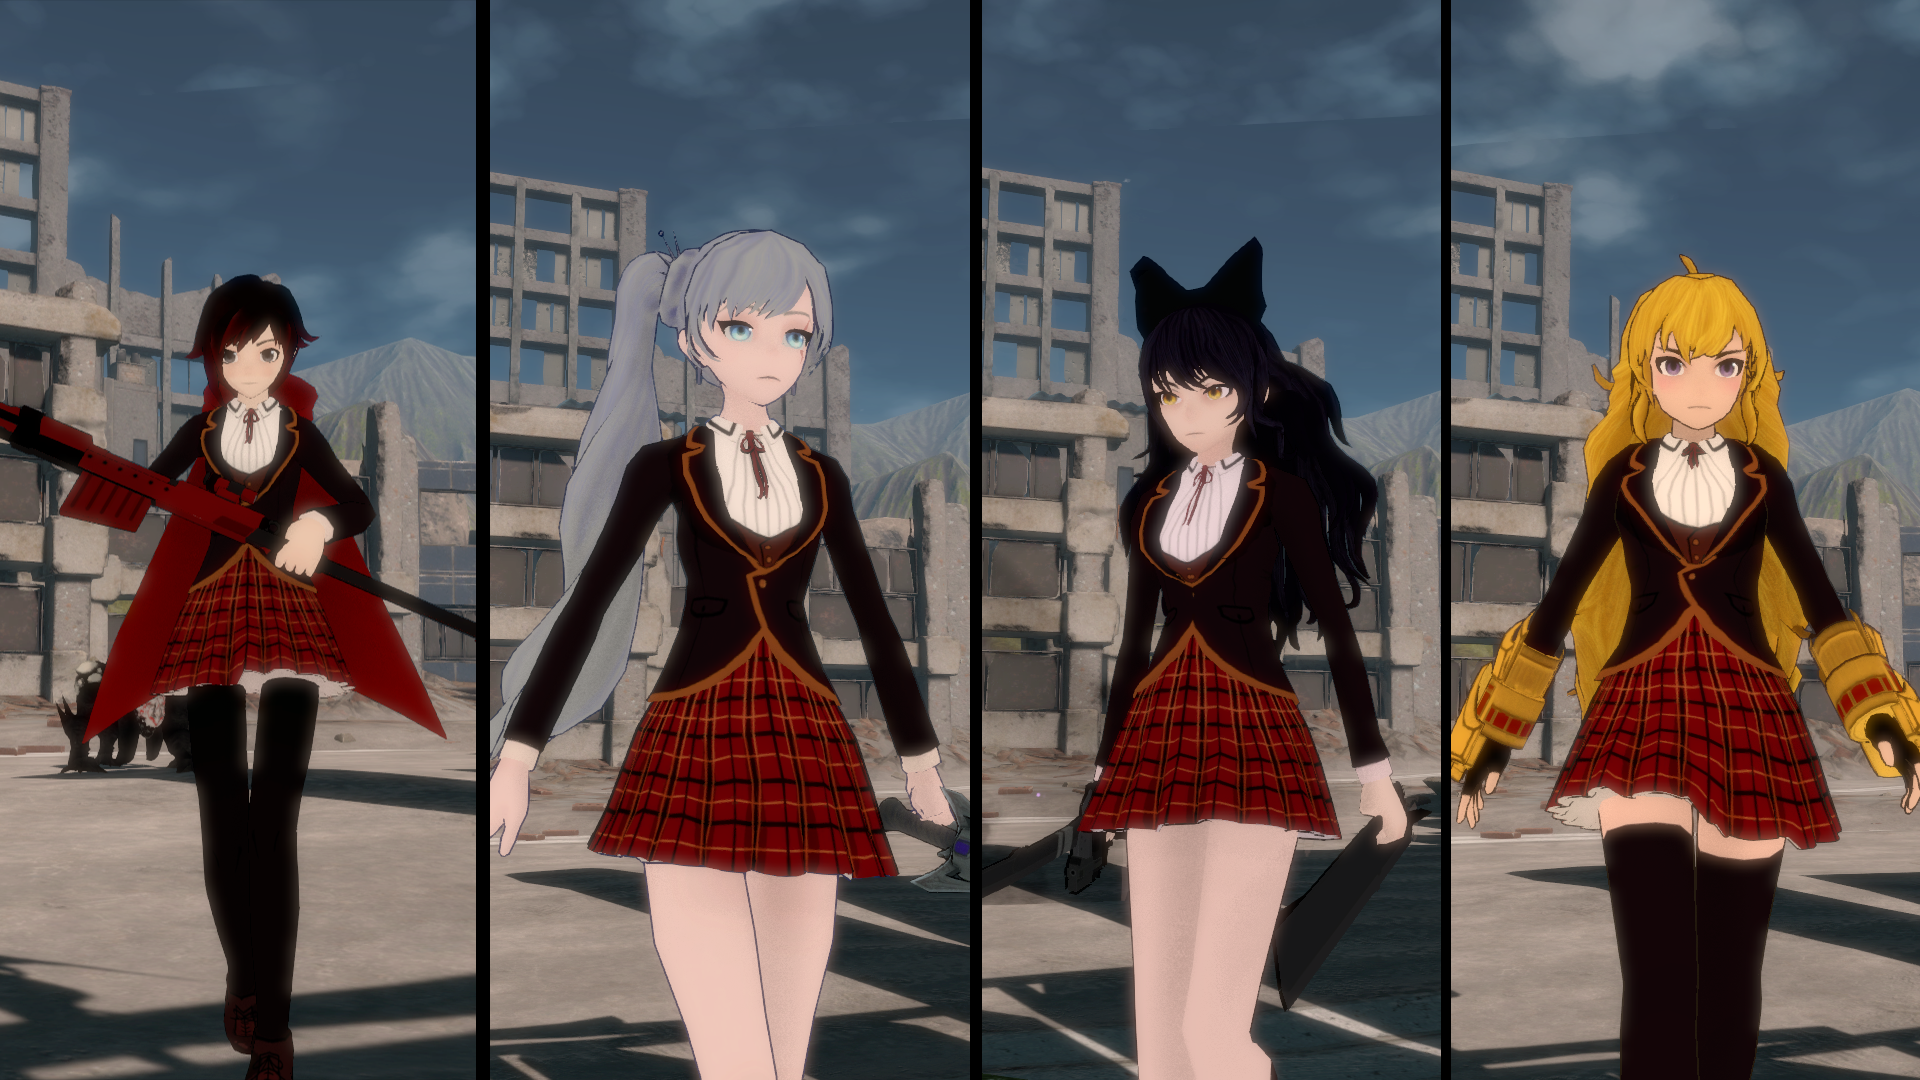 beautiful rwby school outfit free